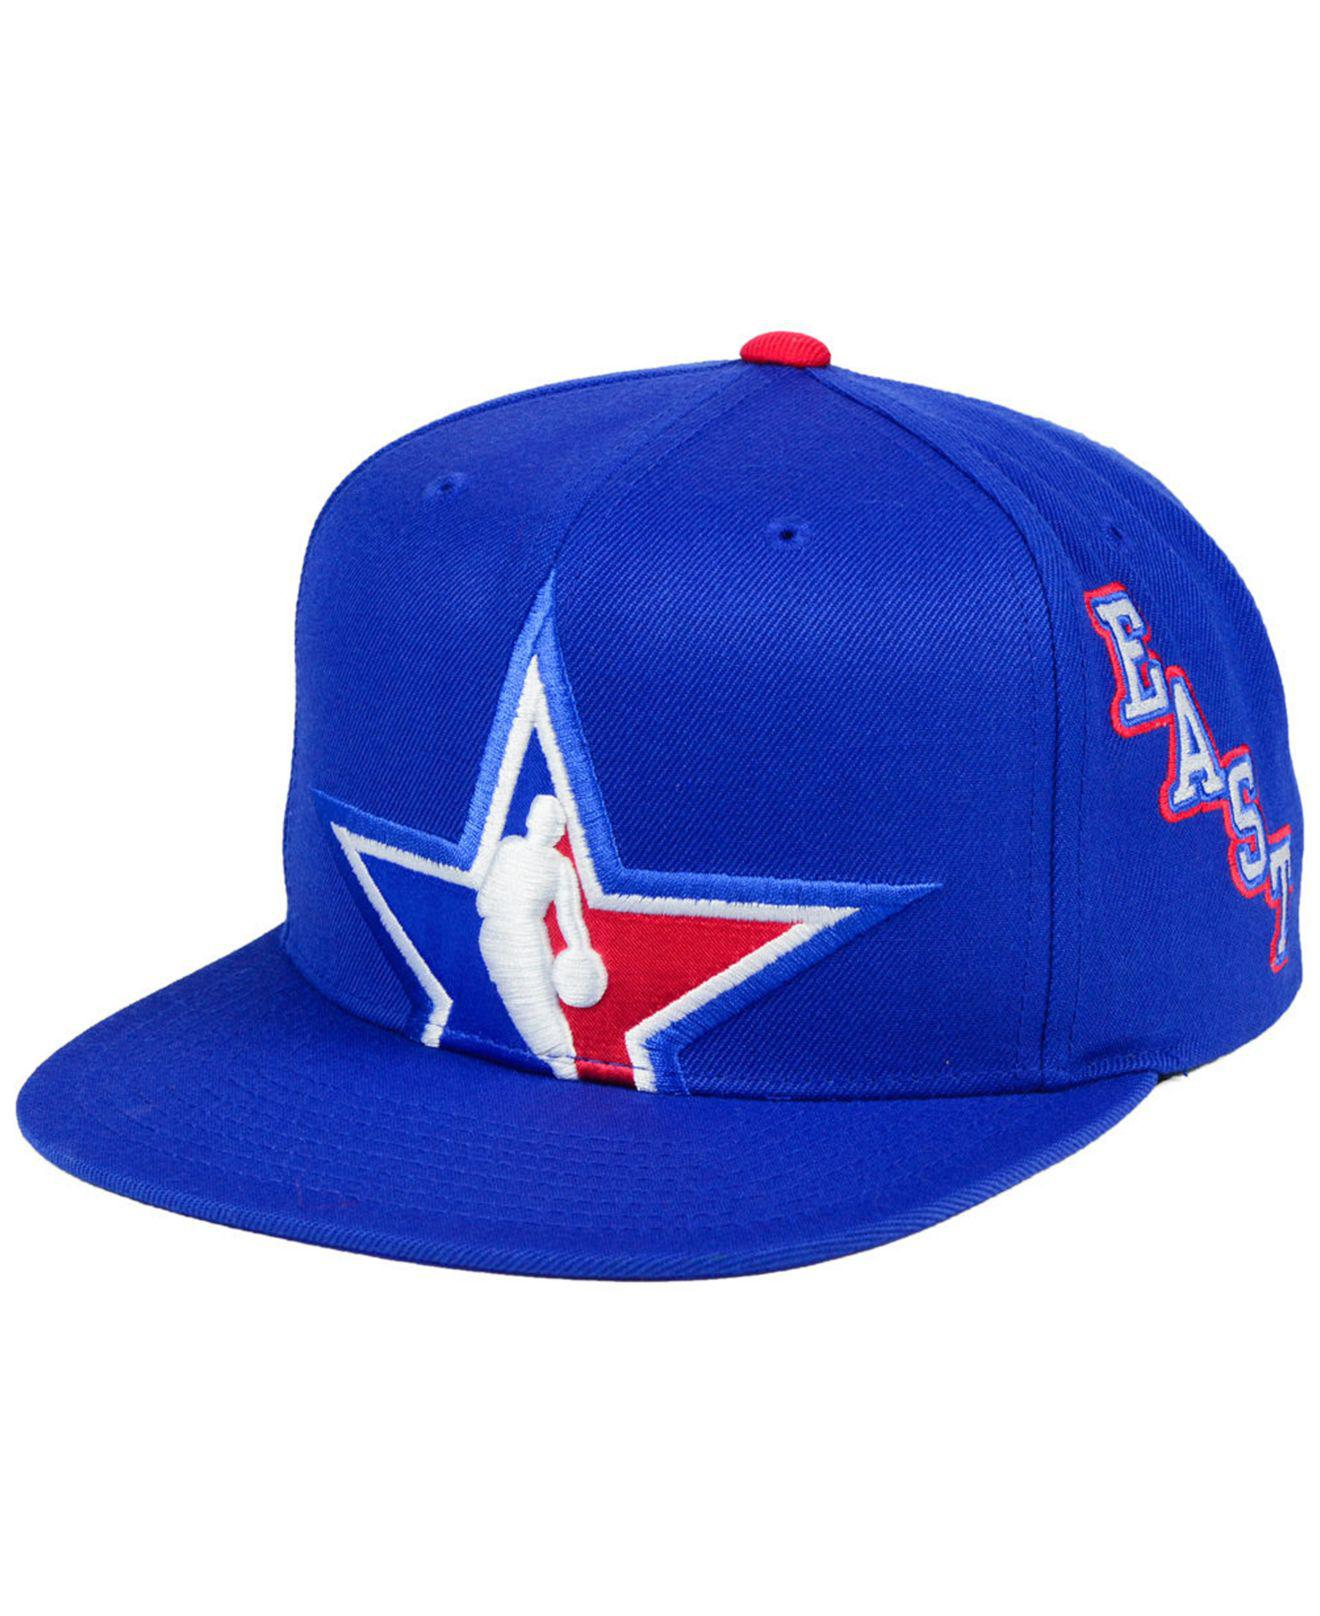 huge discount a4e1f f27ed Mitchell   Ness 2018 Nba All Star Collection East Snapback Cap in ...